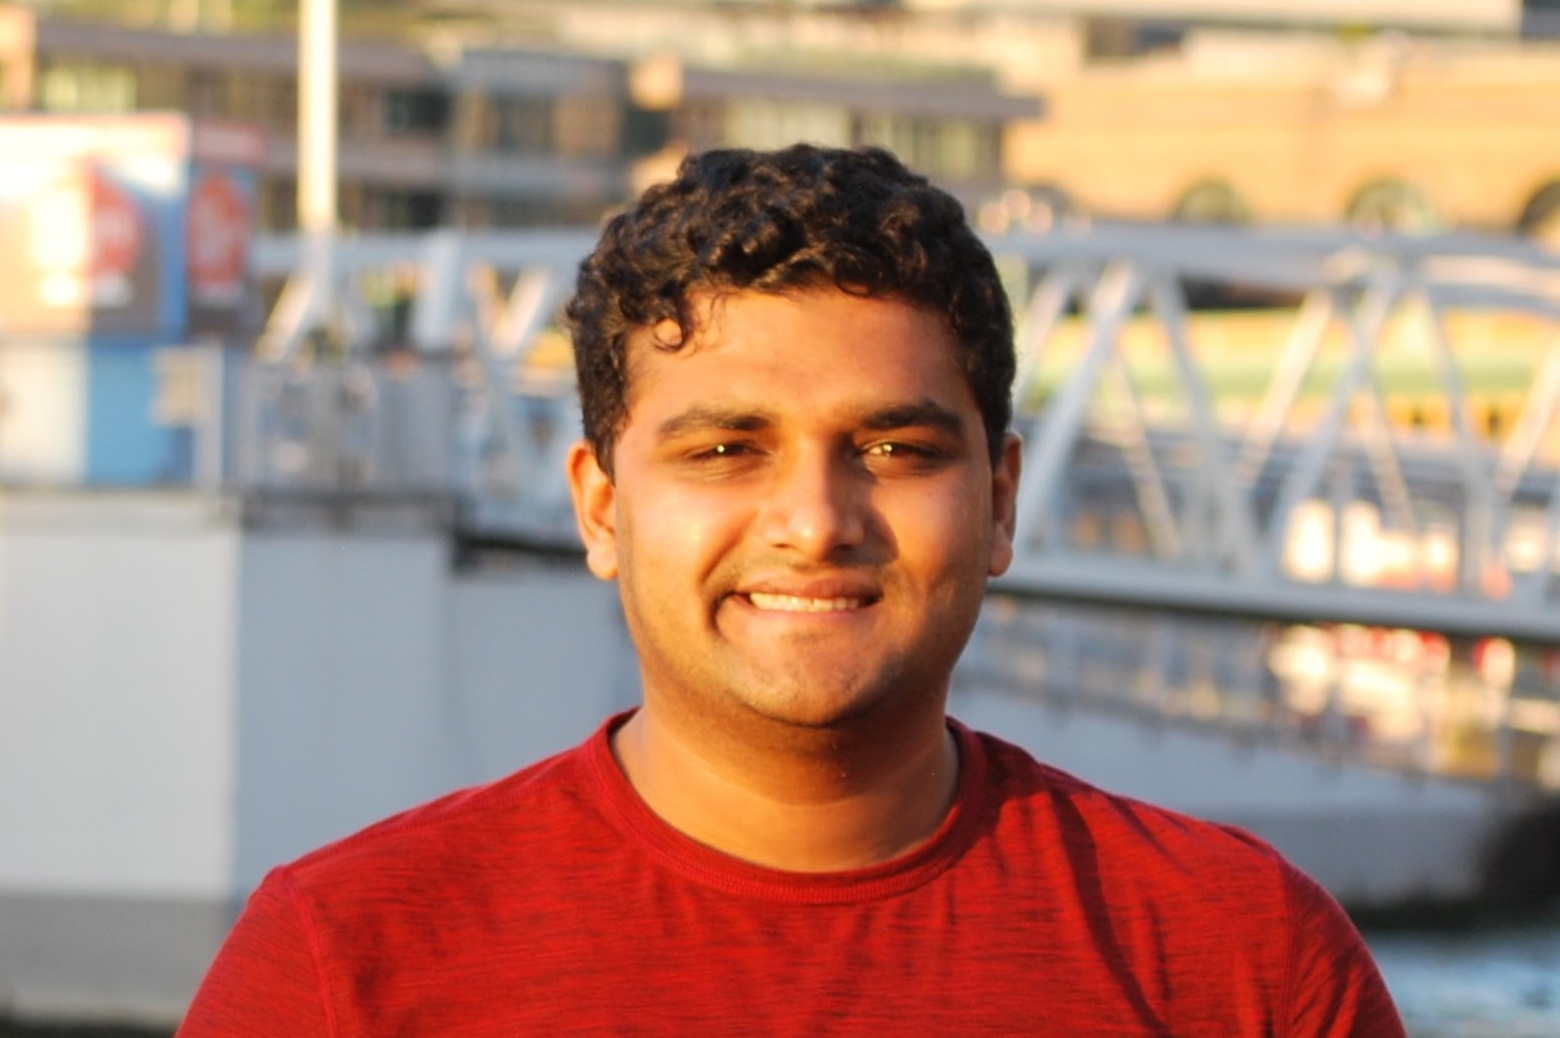 Aerospace Engineering Ph.D. candidate Supraj Prakash awarded NASA ARMD fellowship.